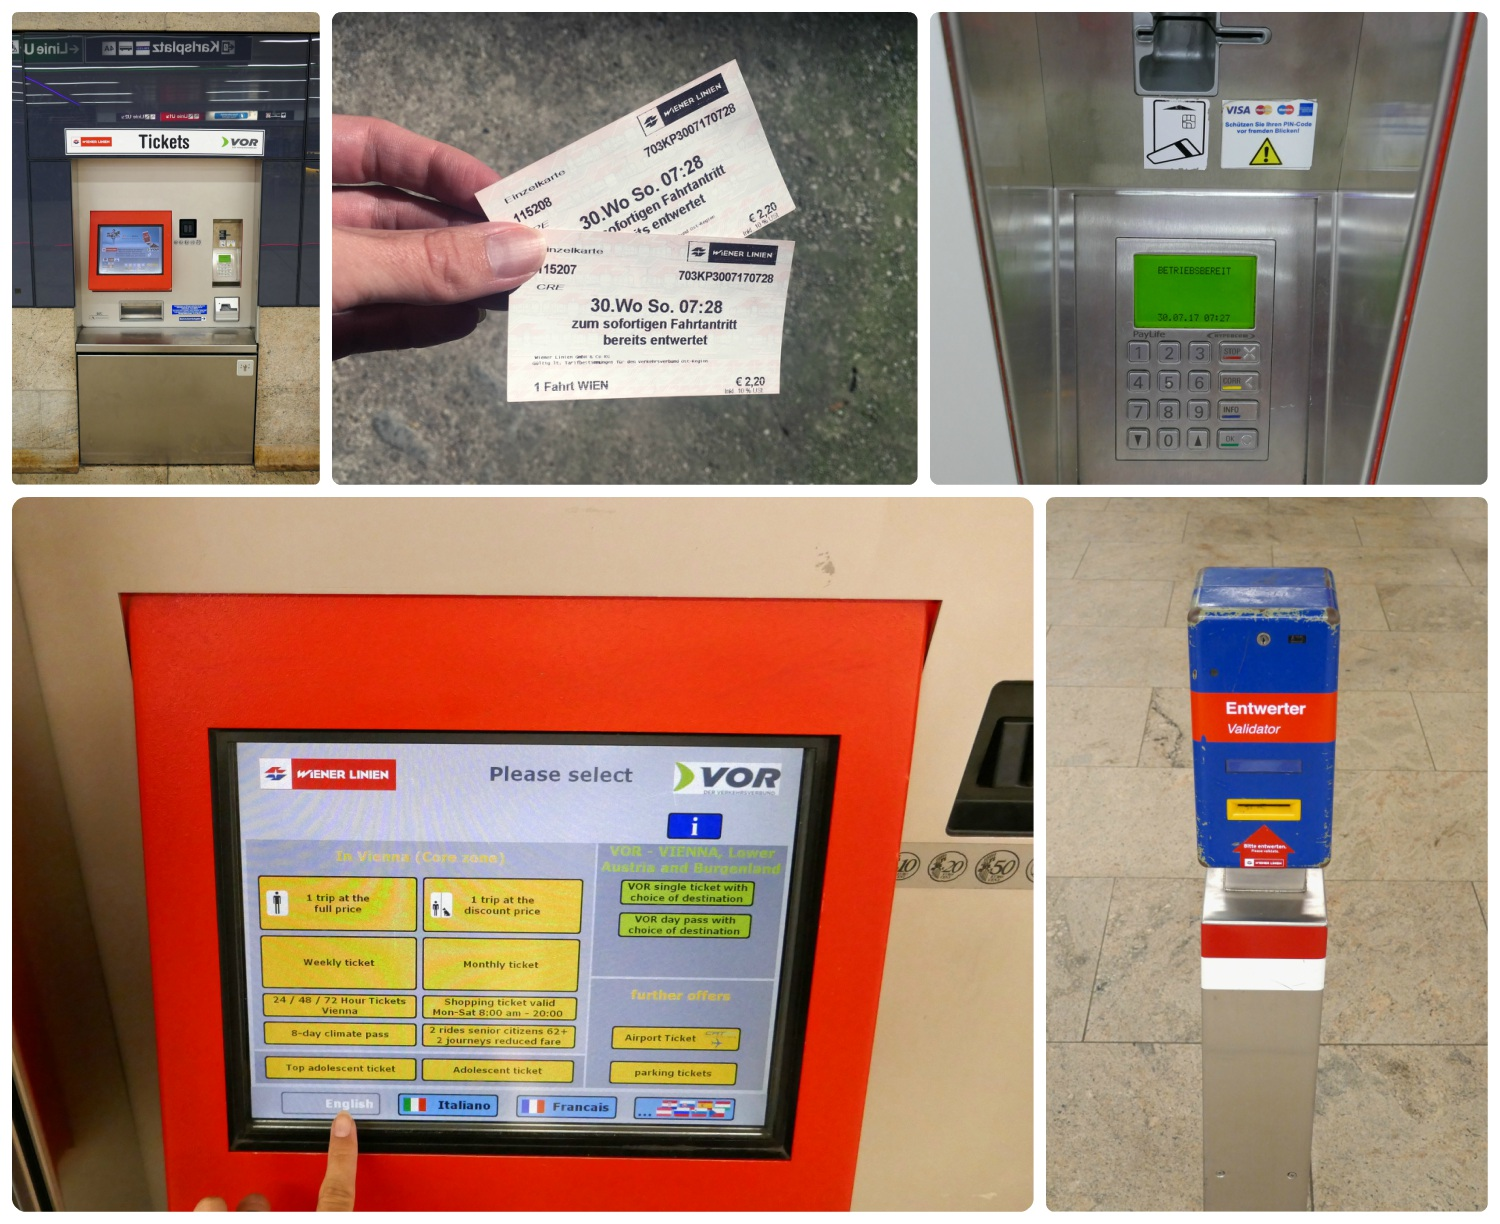 Public transportation tickets in Vienna work on all vehicles (trams, buses, U-Bahn). Clockwise (from the top): A ticket machine in a U-Bahn station, our Single Journey tickets, an up close shot of the ticket machine screen showing ticket options as well as language options, the ticket validation machine where you insert your ticket in the slot that's highlighted in yellow with the red arrow.